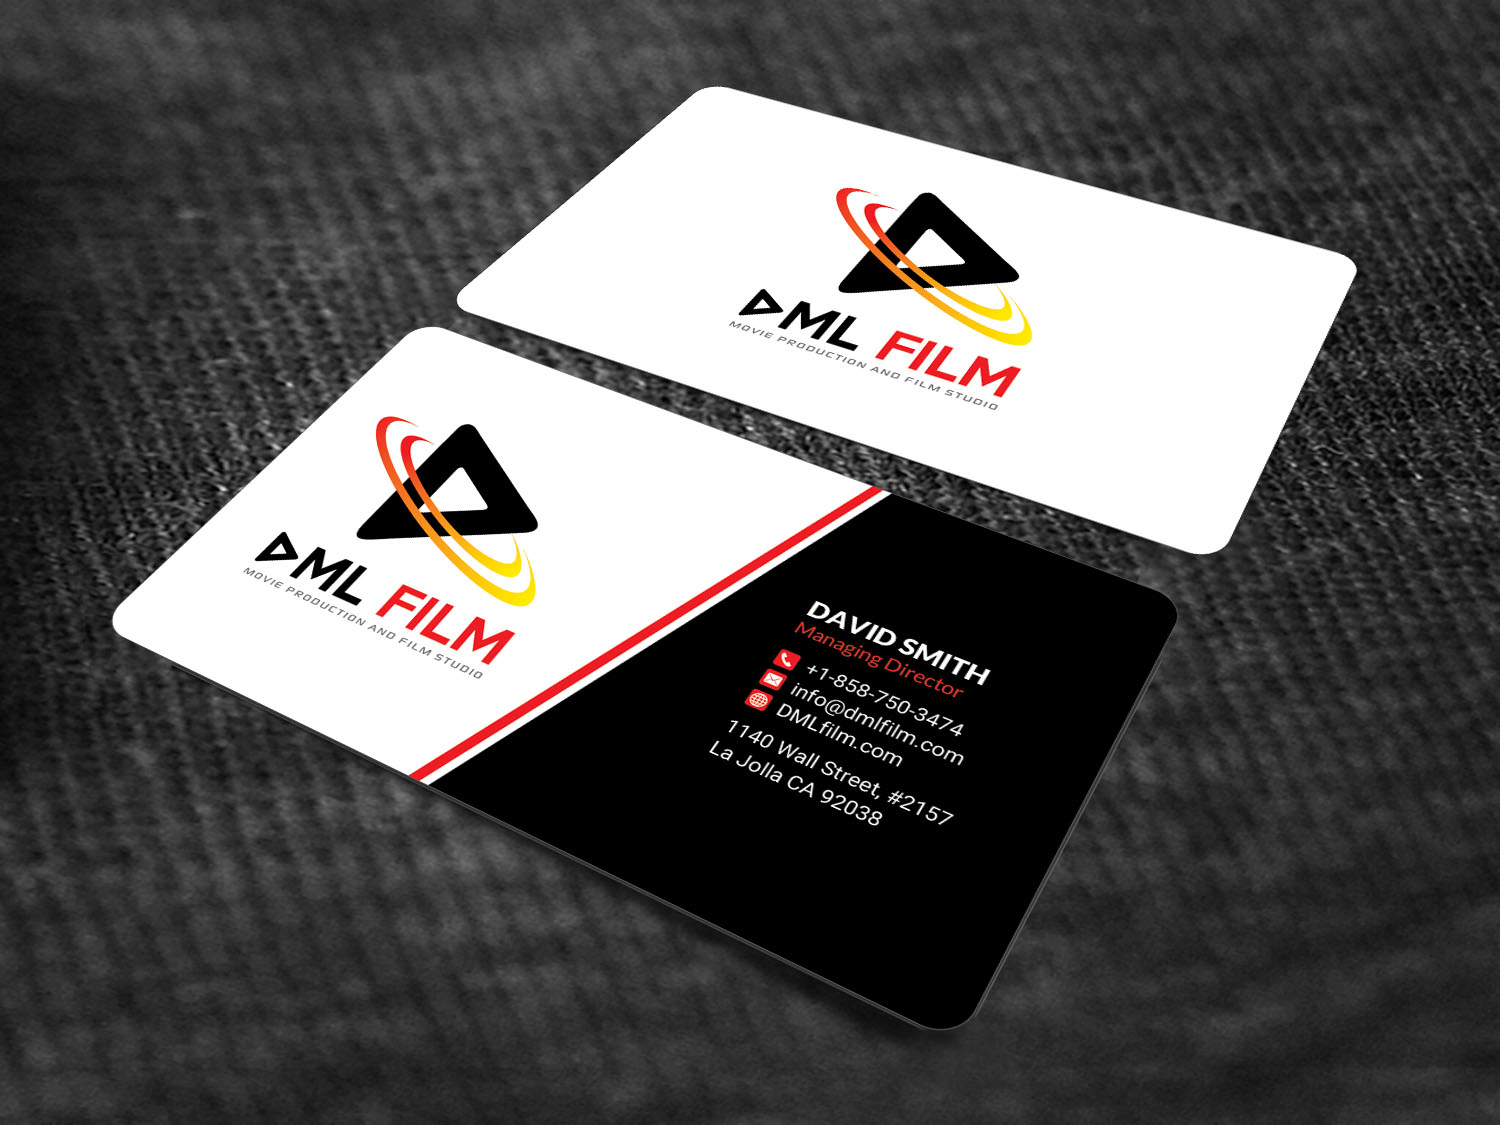 Perfect entertainment business card gift business card ideas elegant playful entertainment industry business card design for d reheart Choice Image